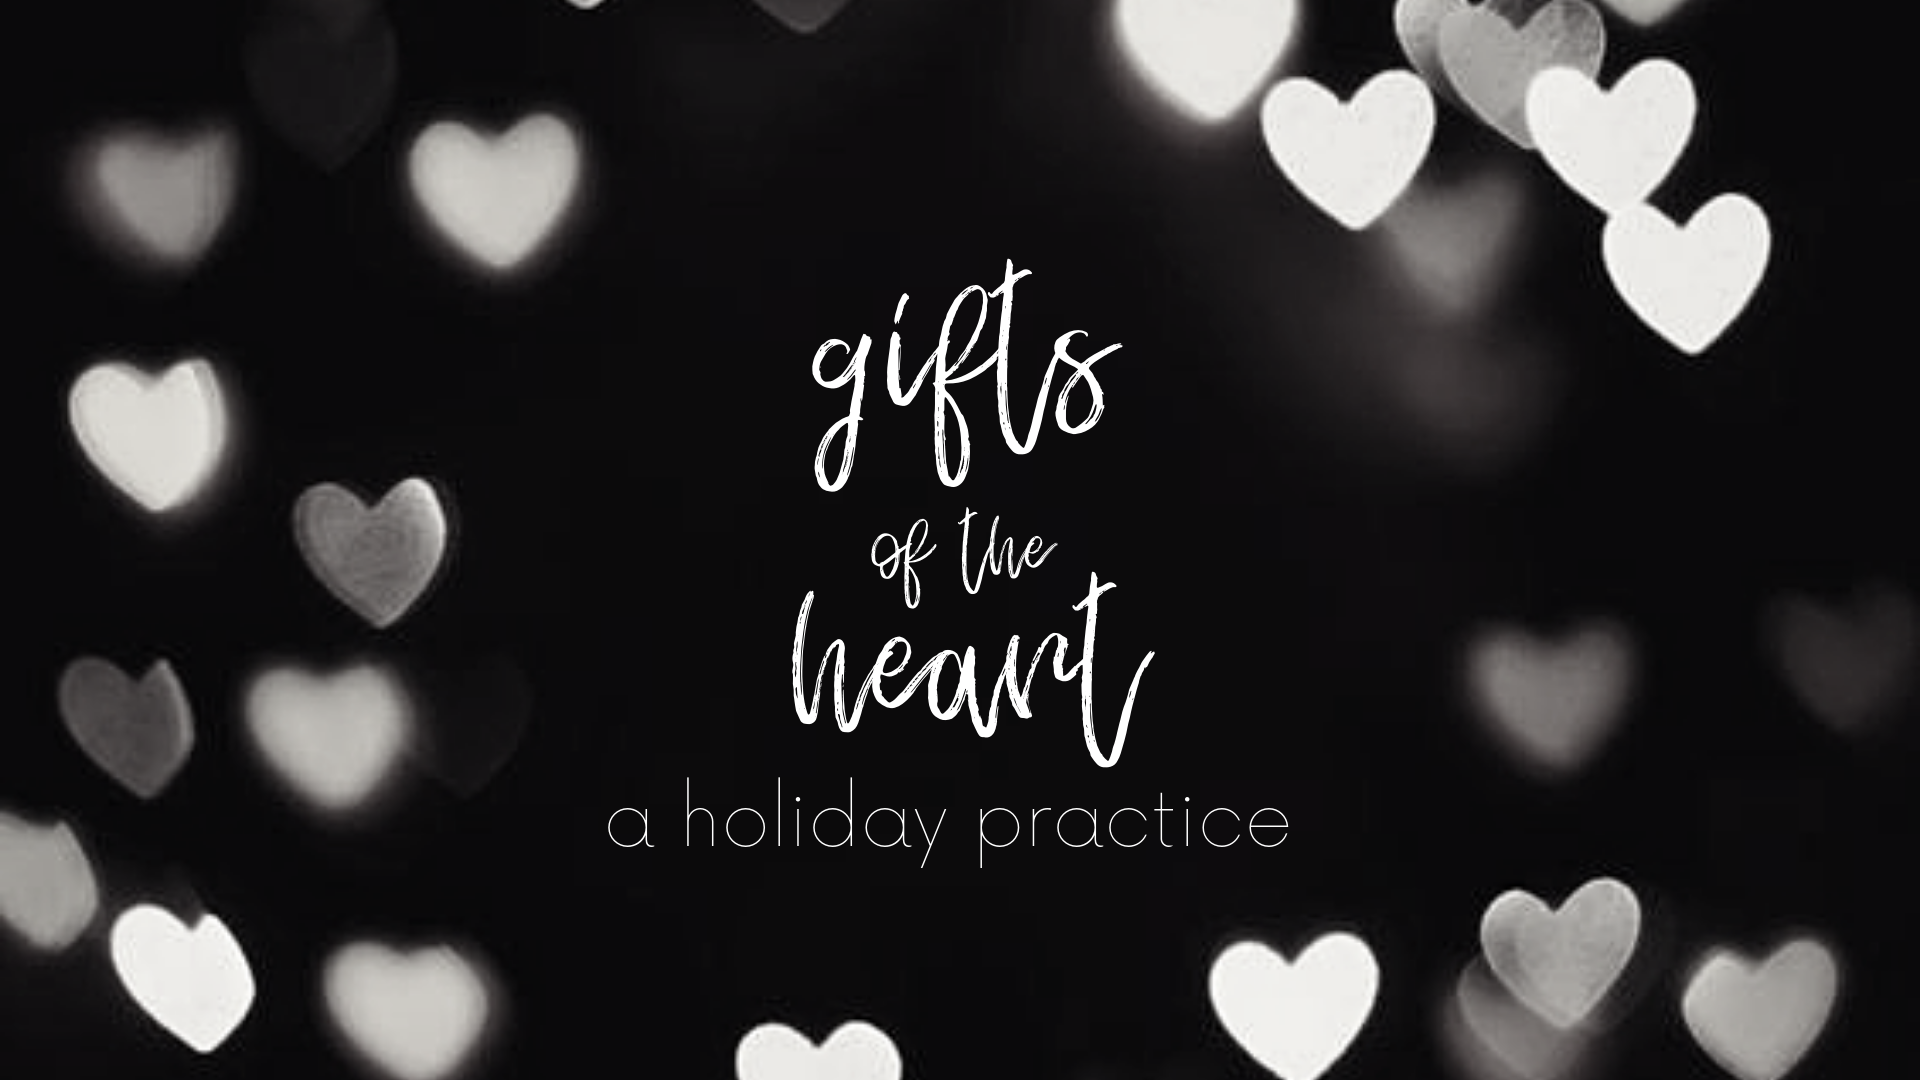 Gifts of the Heart: a Holiday Practice - Monday, December 24th from 9:00 - 10:15For the first time ever, Join Jackie and her sister Samantha as they collaborate for this fun and sweaty flow designed to open your heart this holiday season. We find both strength and ease in this embodied journey through the story of the three wise men and the gifts they bring to our lives here and now. Expect a lot of love, sweat and smiles. Donation Based! Proceeds go to Extraordinary Everett for his first plane ride to South Carolina for the 2019 BPAN conference! Read more about Everett here!